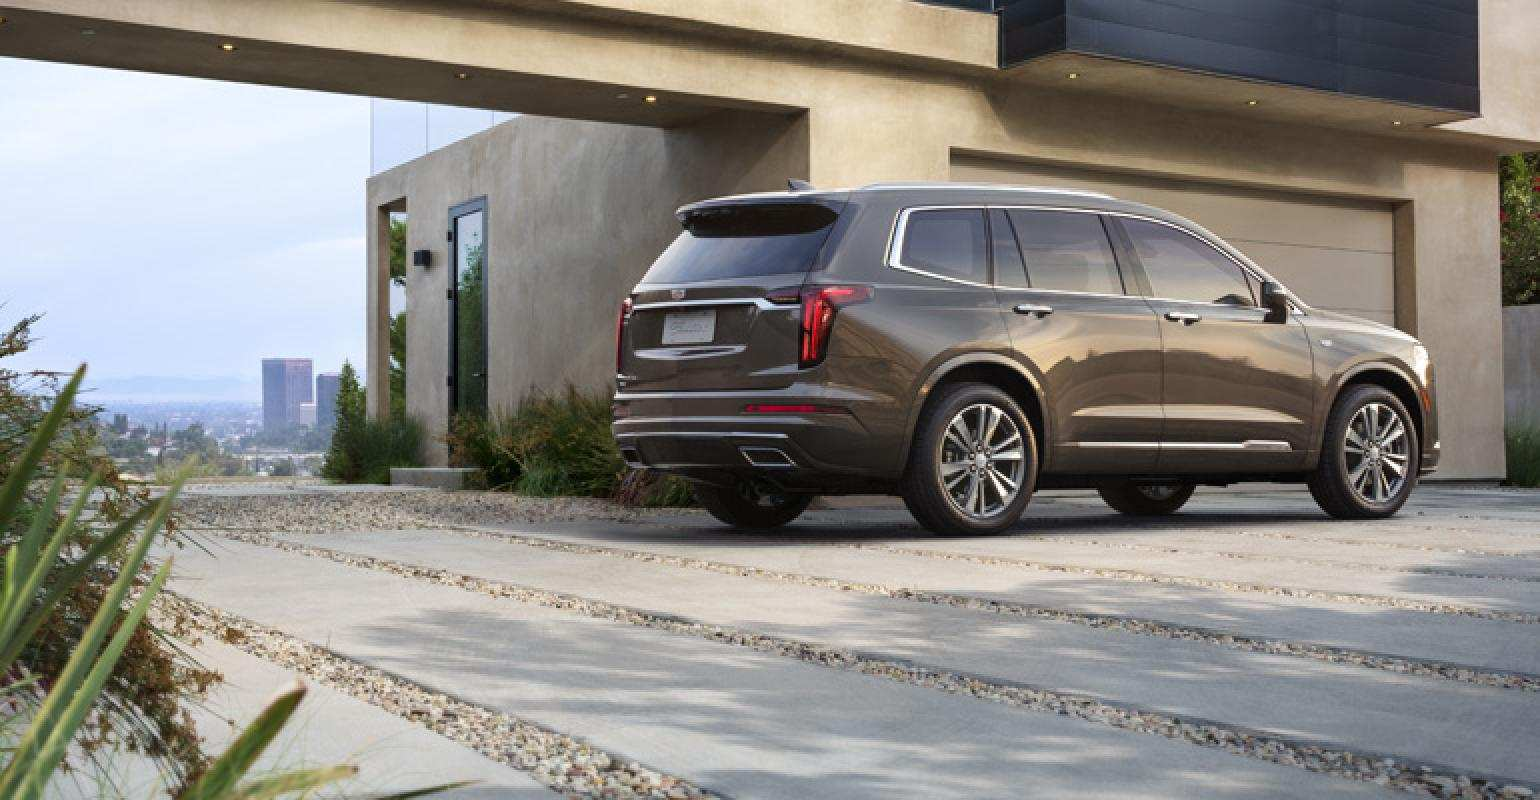 59 Concept of 2020 Cadillac Xt6 Length Price and Review by 2020 Cadillac Xt6 Length